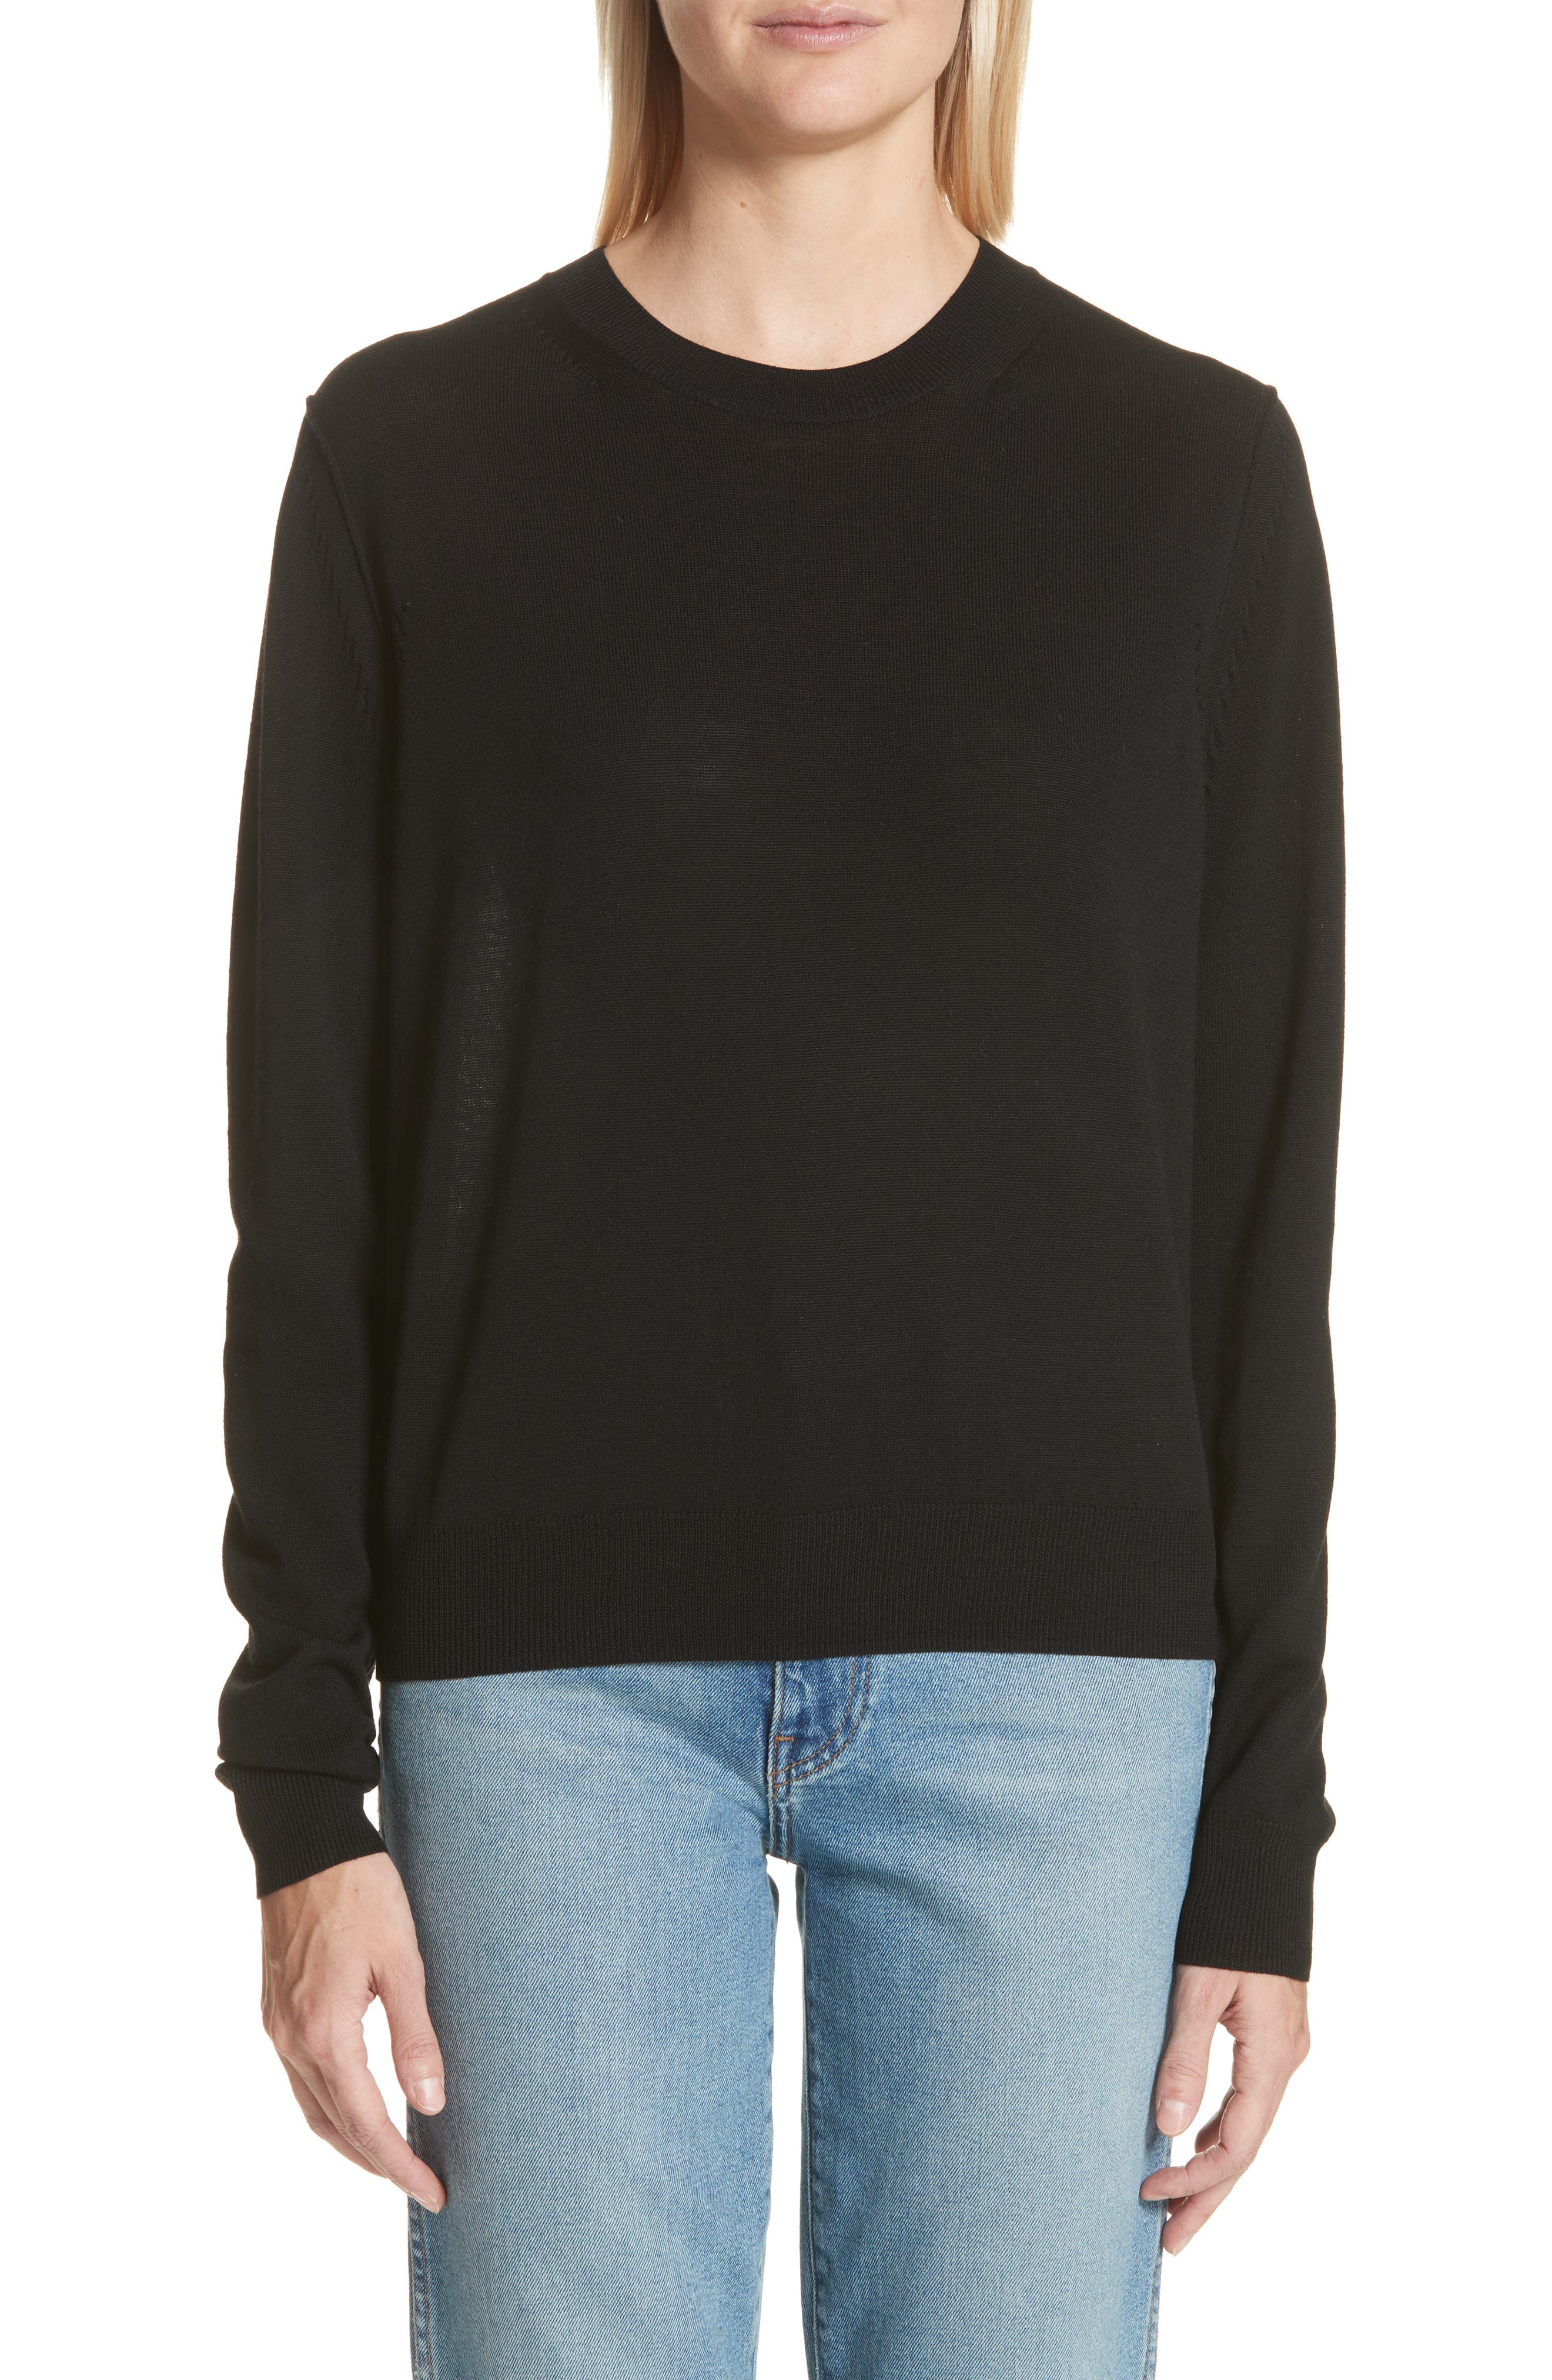 ACNE Studios Norma Semi Sheer Sweater